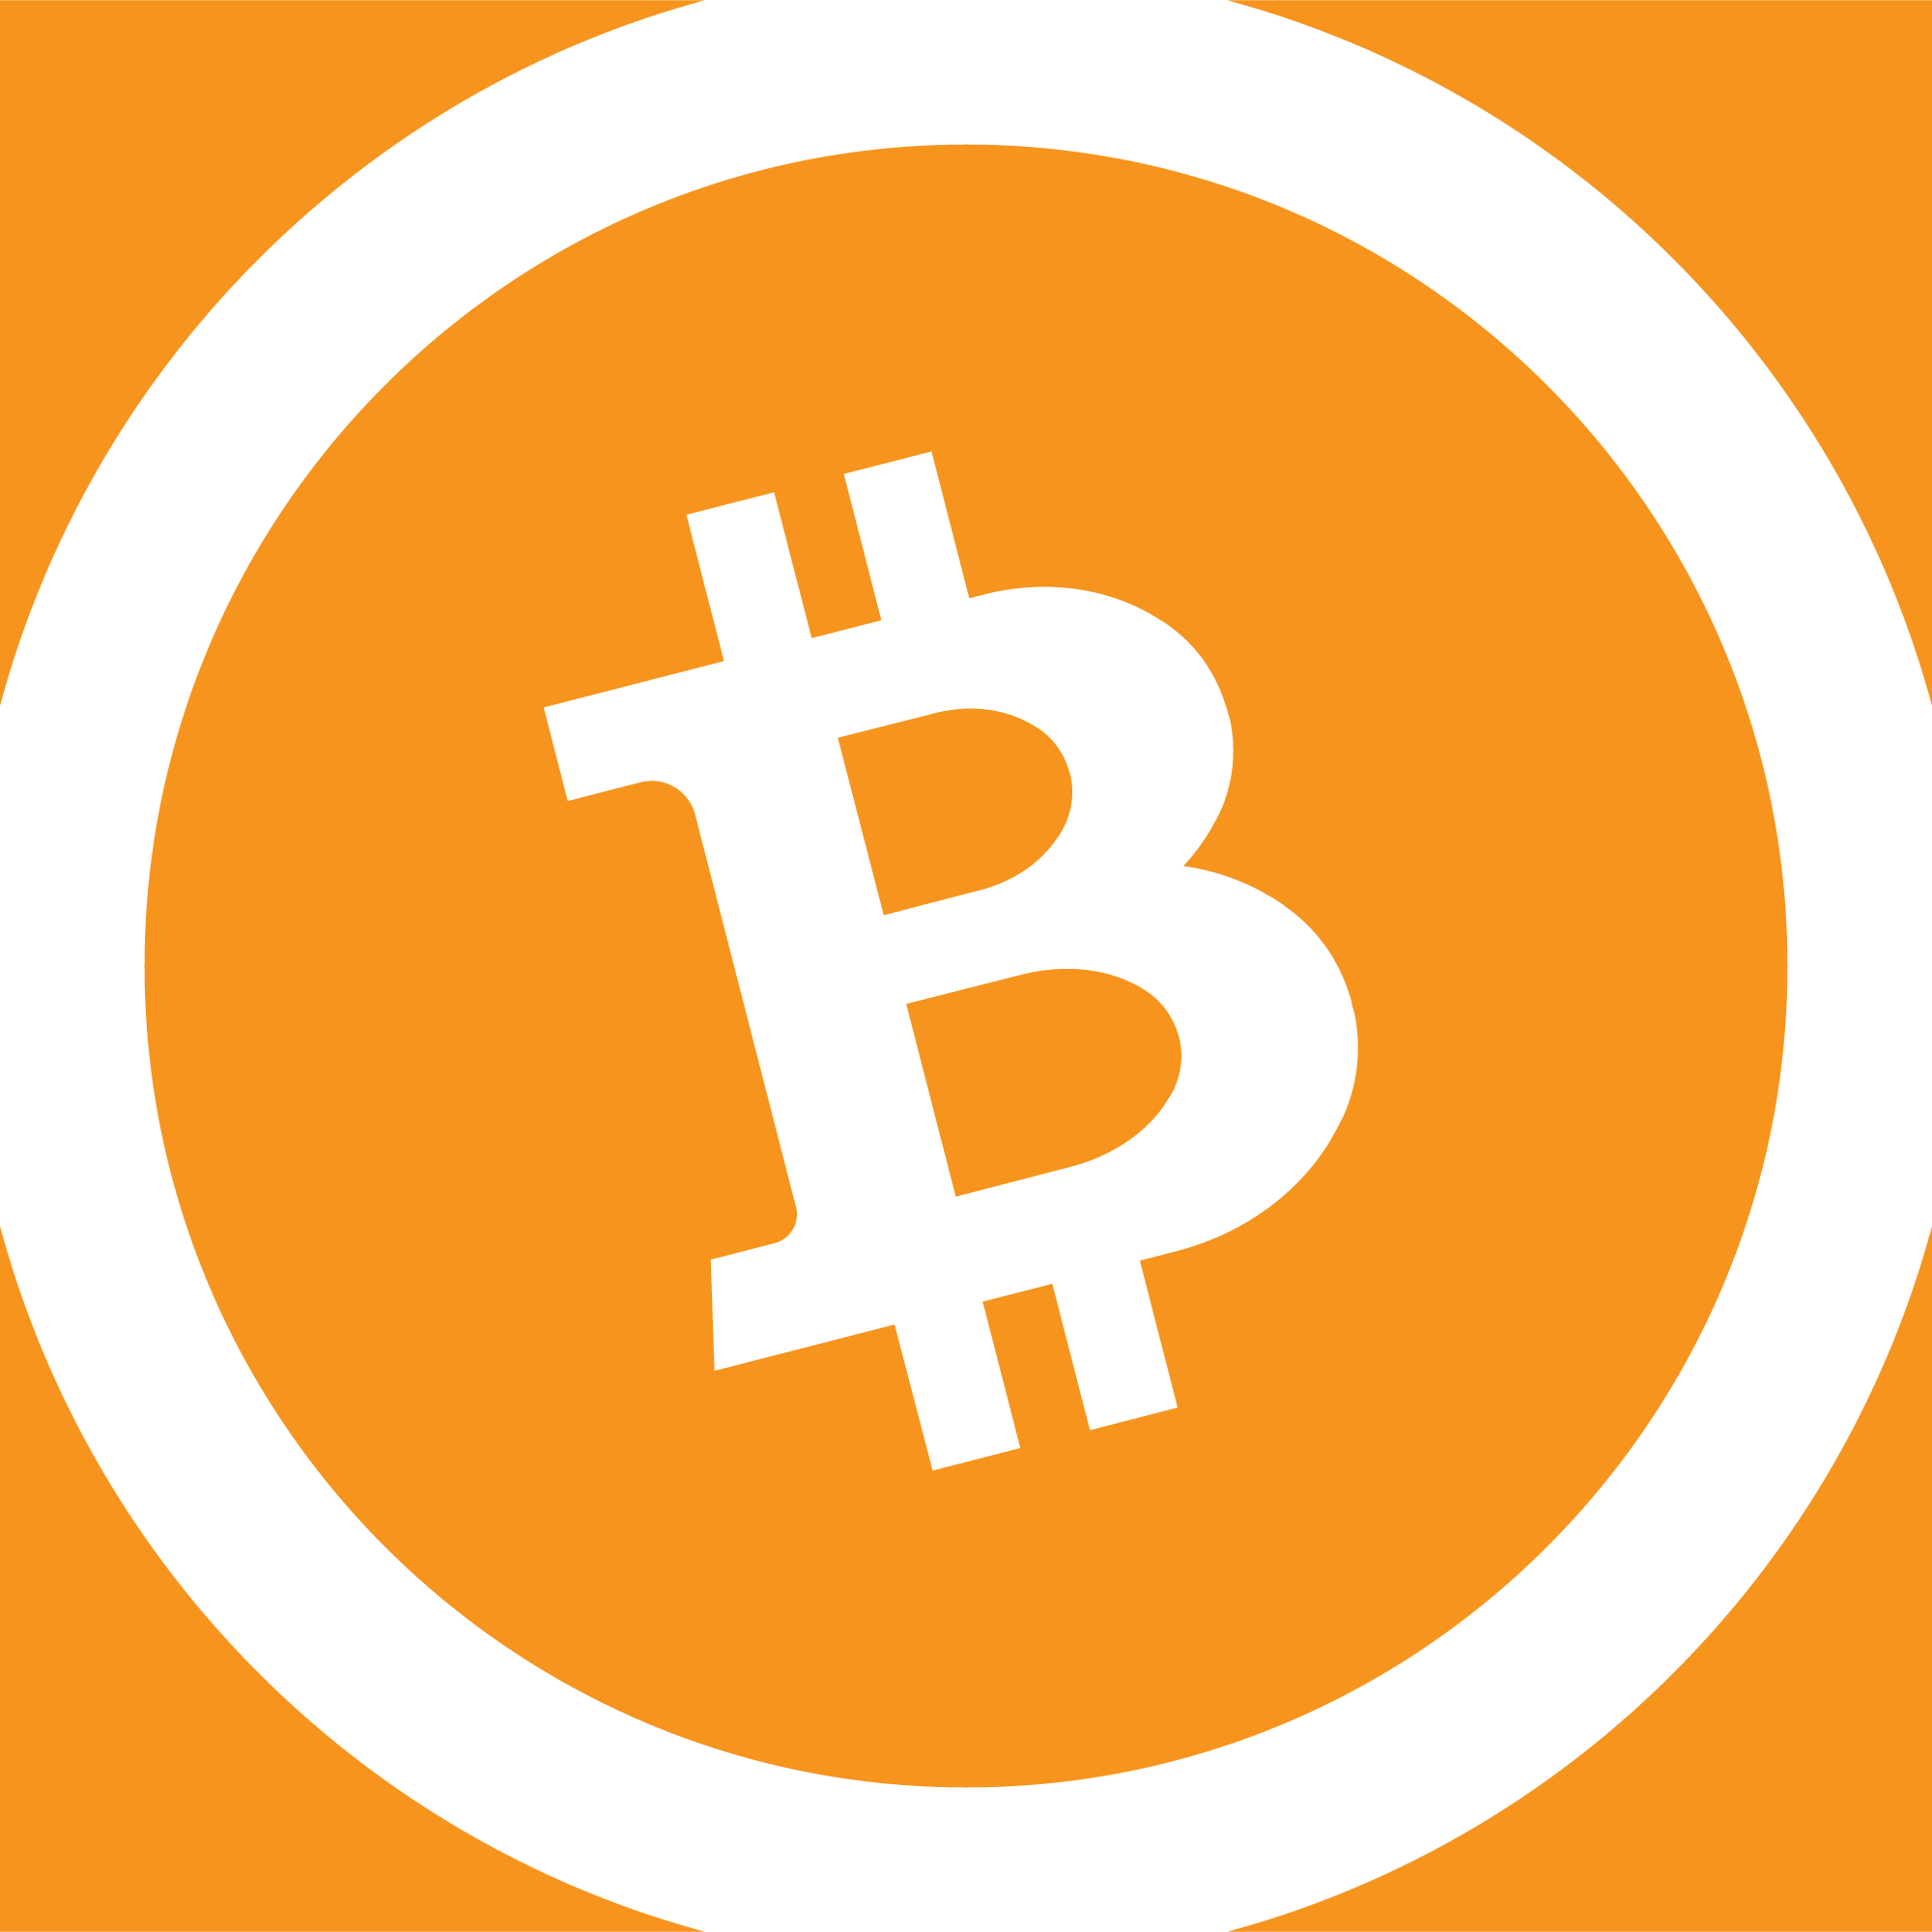 12-bitcoin-cash-square-crop-full.png